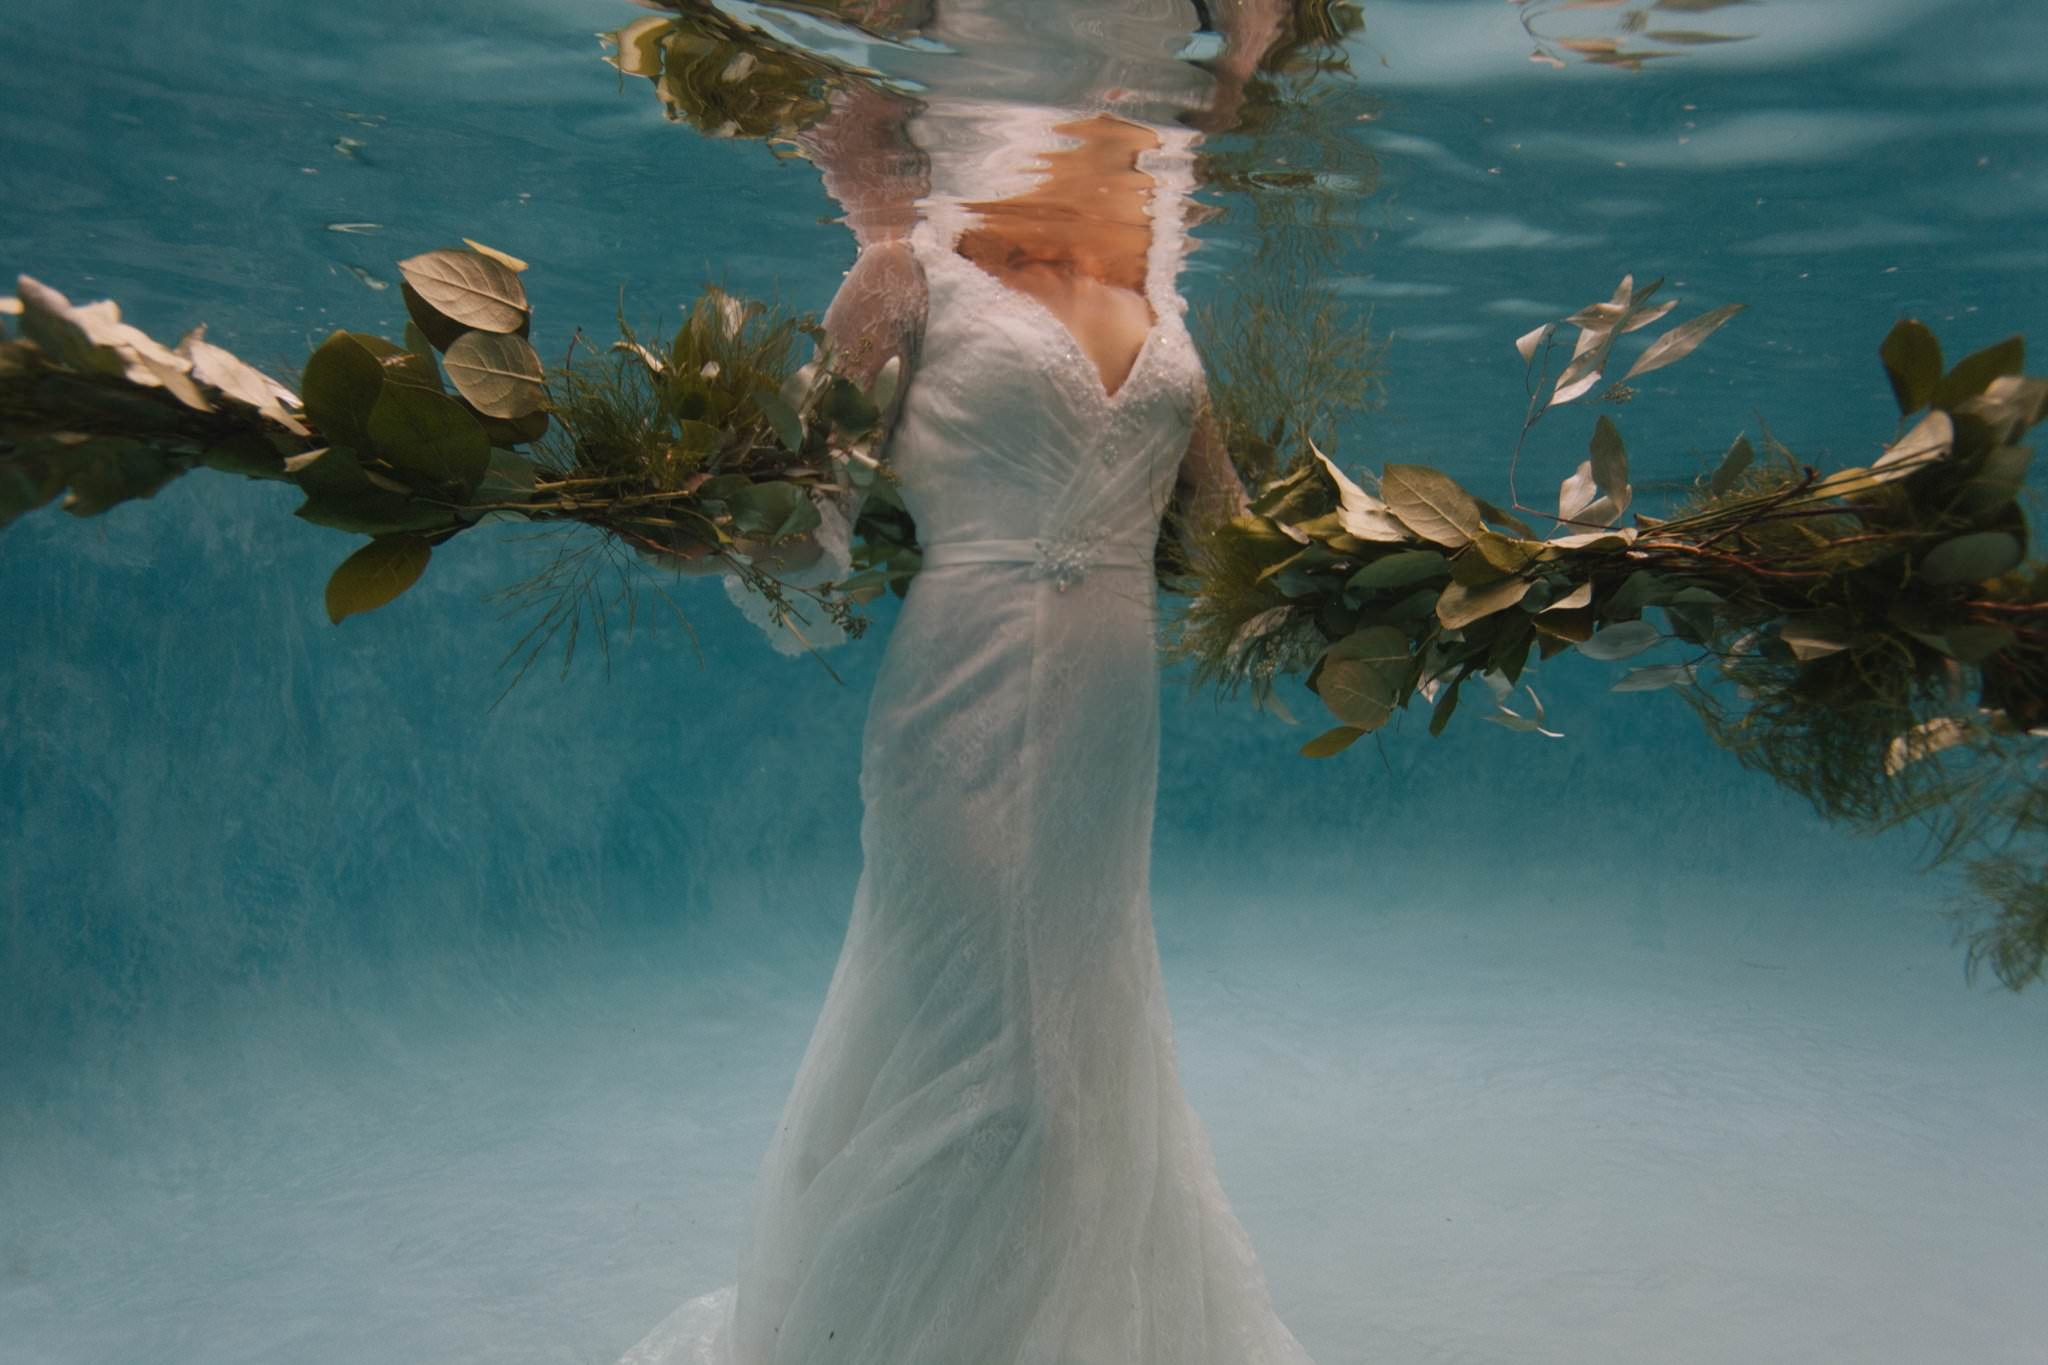 Arizona underwater trash the wedding dress